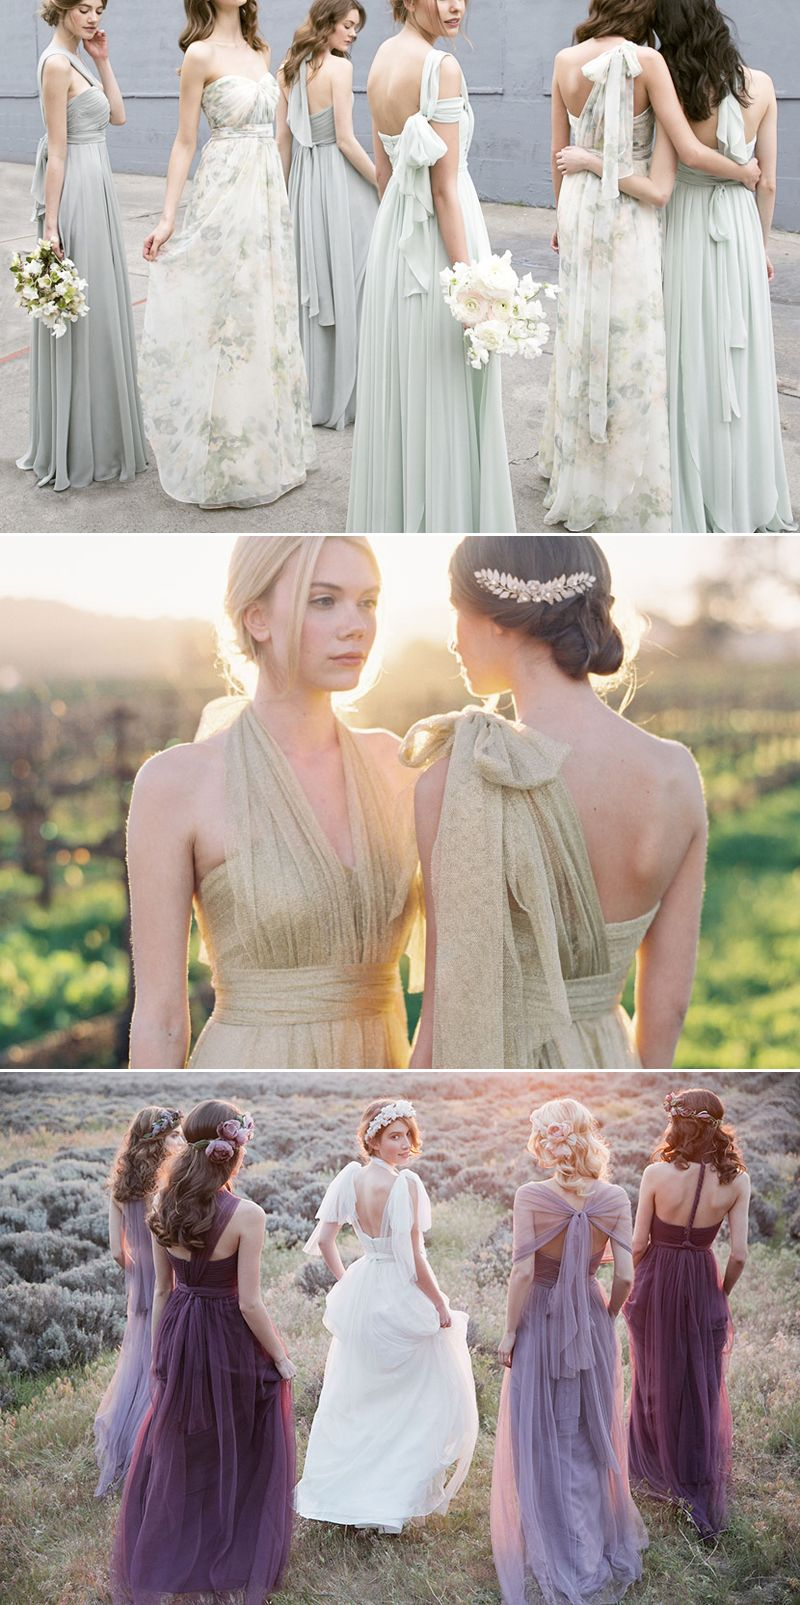 Girls wedding dress  The  Bridesmaid Dress Trends You Need To Know For This Spring